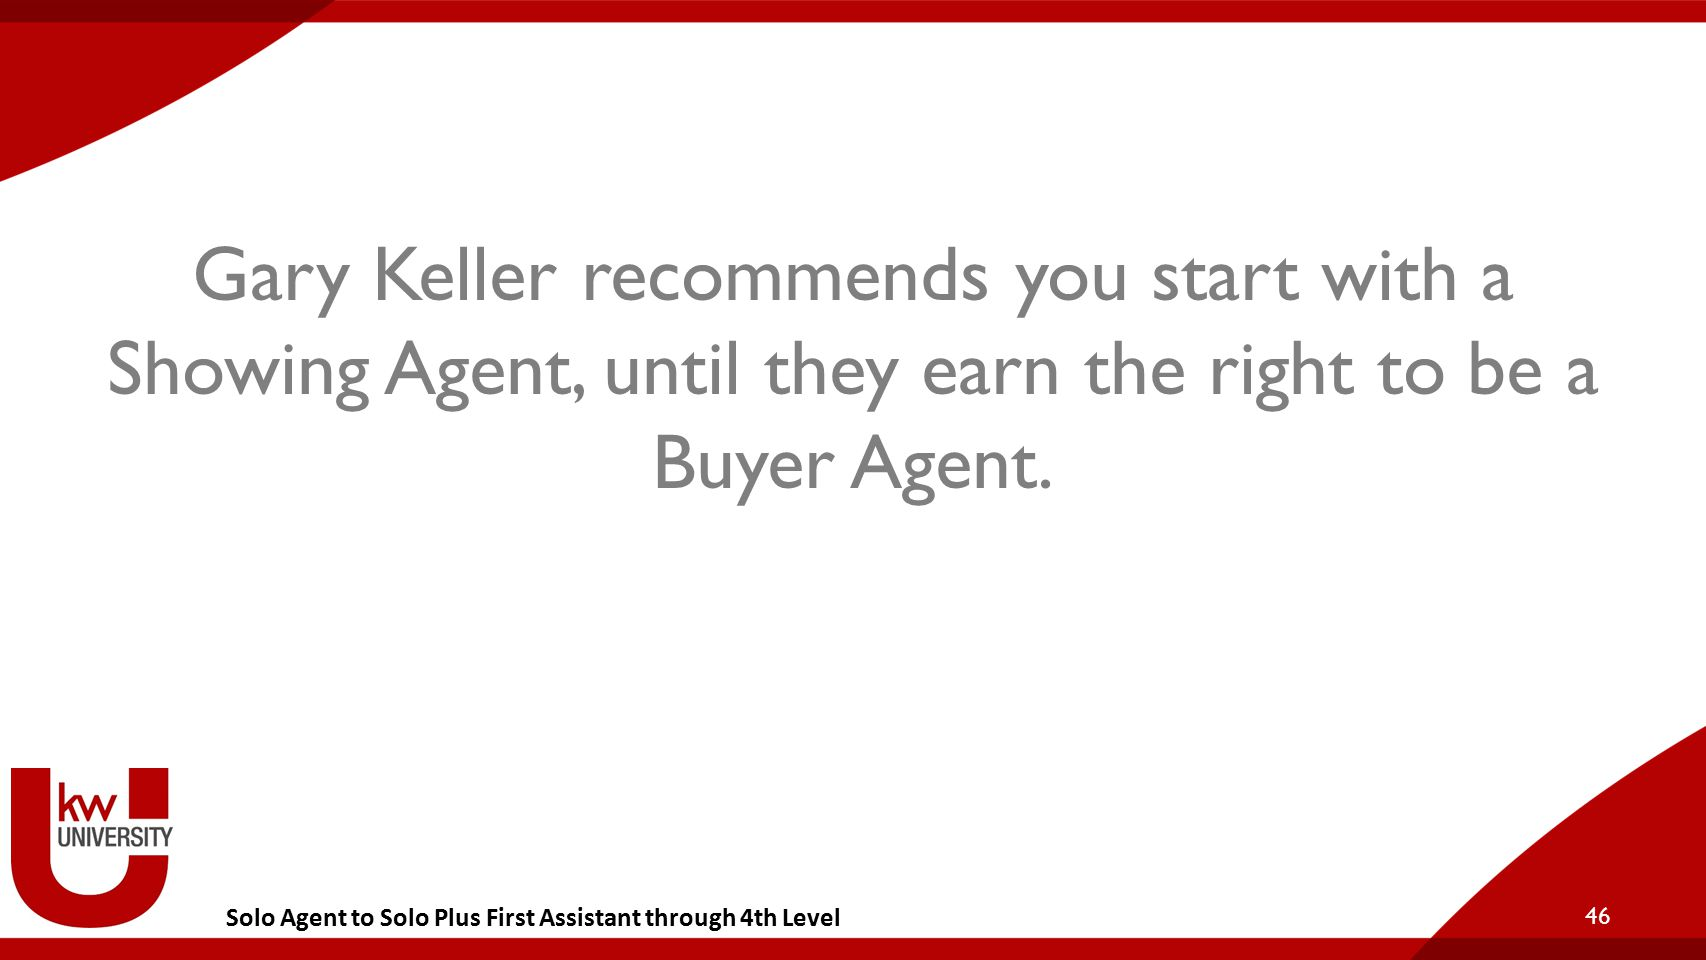 Solo Agent to Solo Plus First Assistant through 4th Level Gary Keller recommends you start with a Showing Agent, until they earn the right to be a Buy